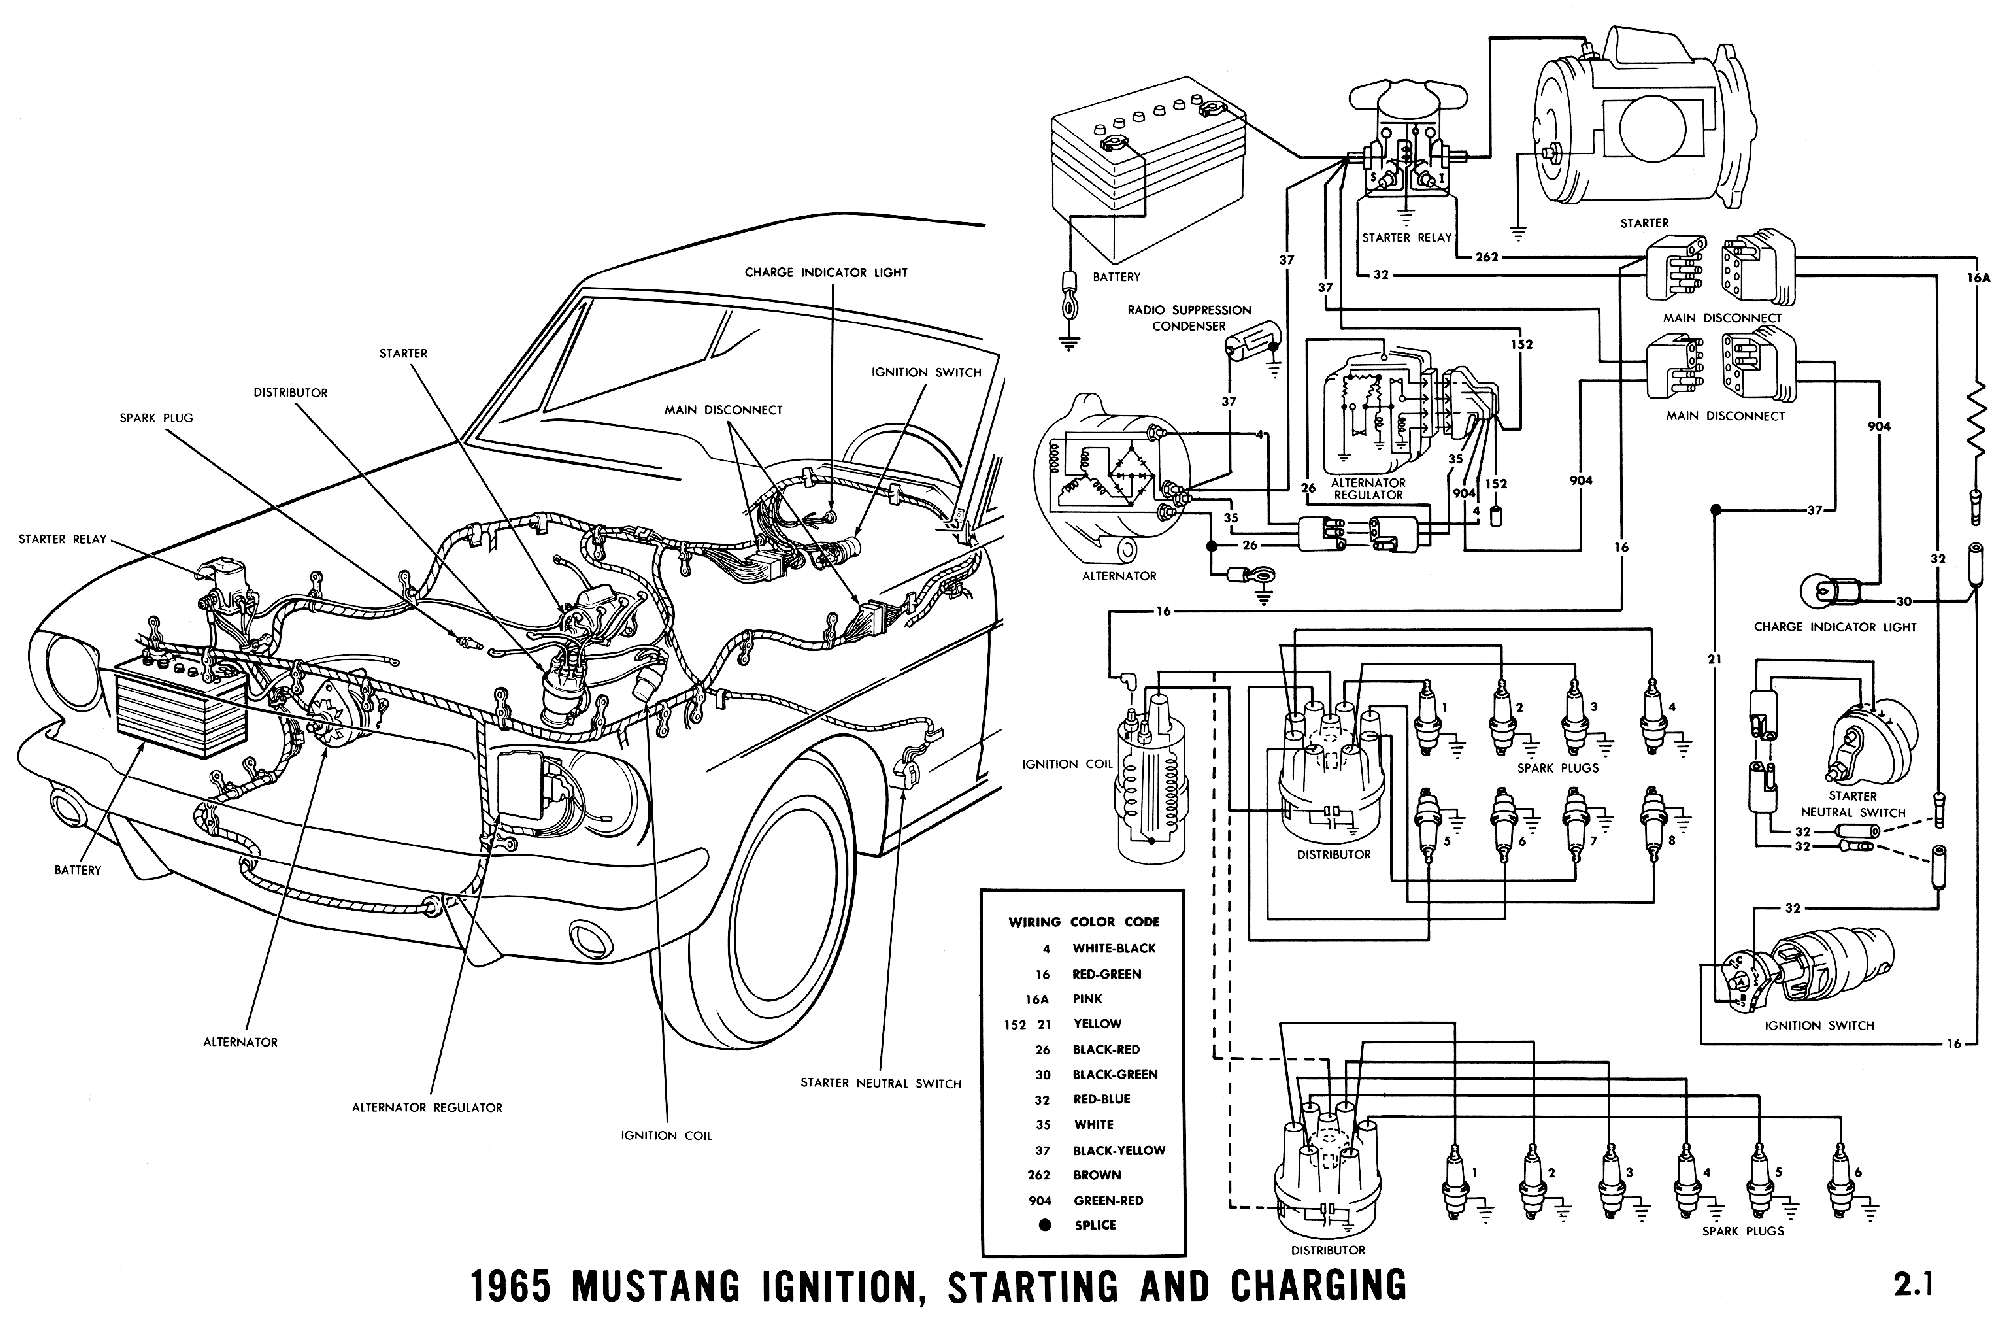 1965 Mustang Wiring Diagrams Average Joe Restoration Gm Heater Harness Diagram Charging Pictorial And Schematic